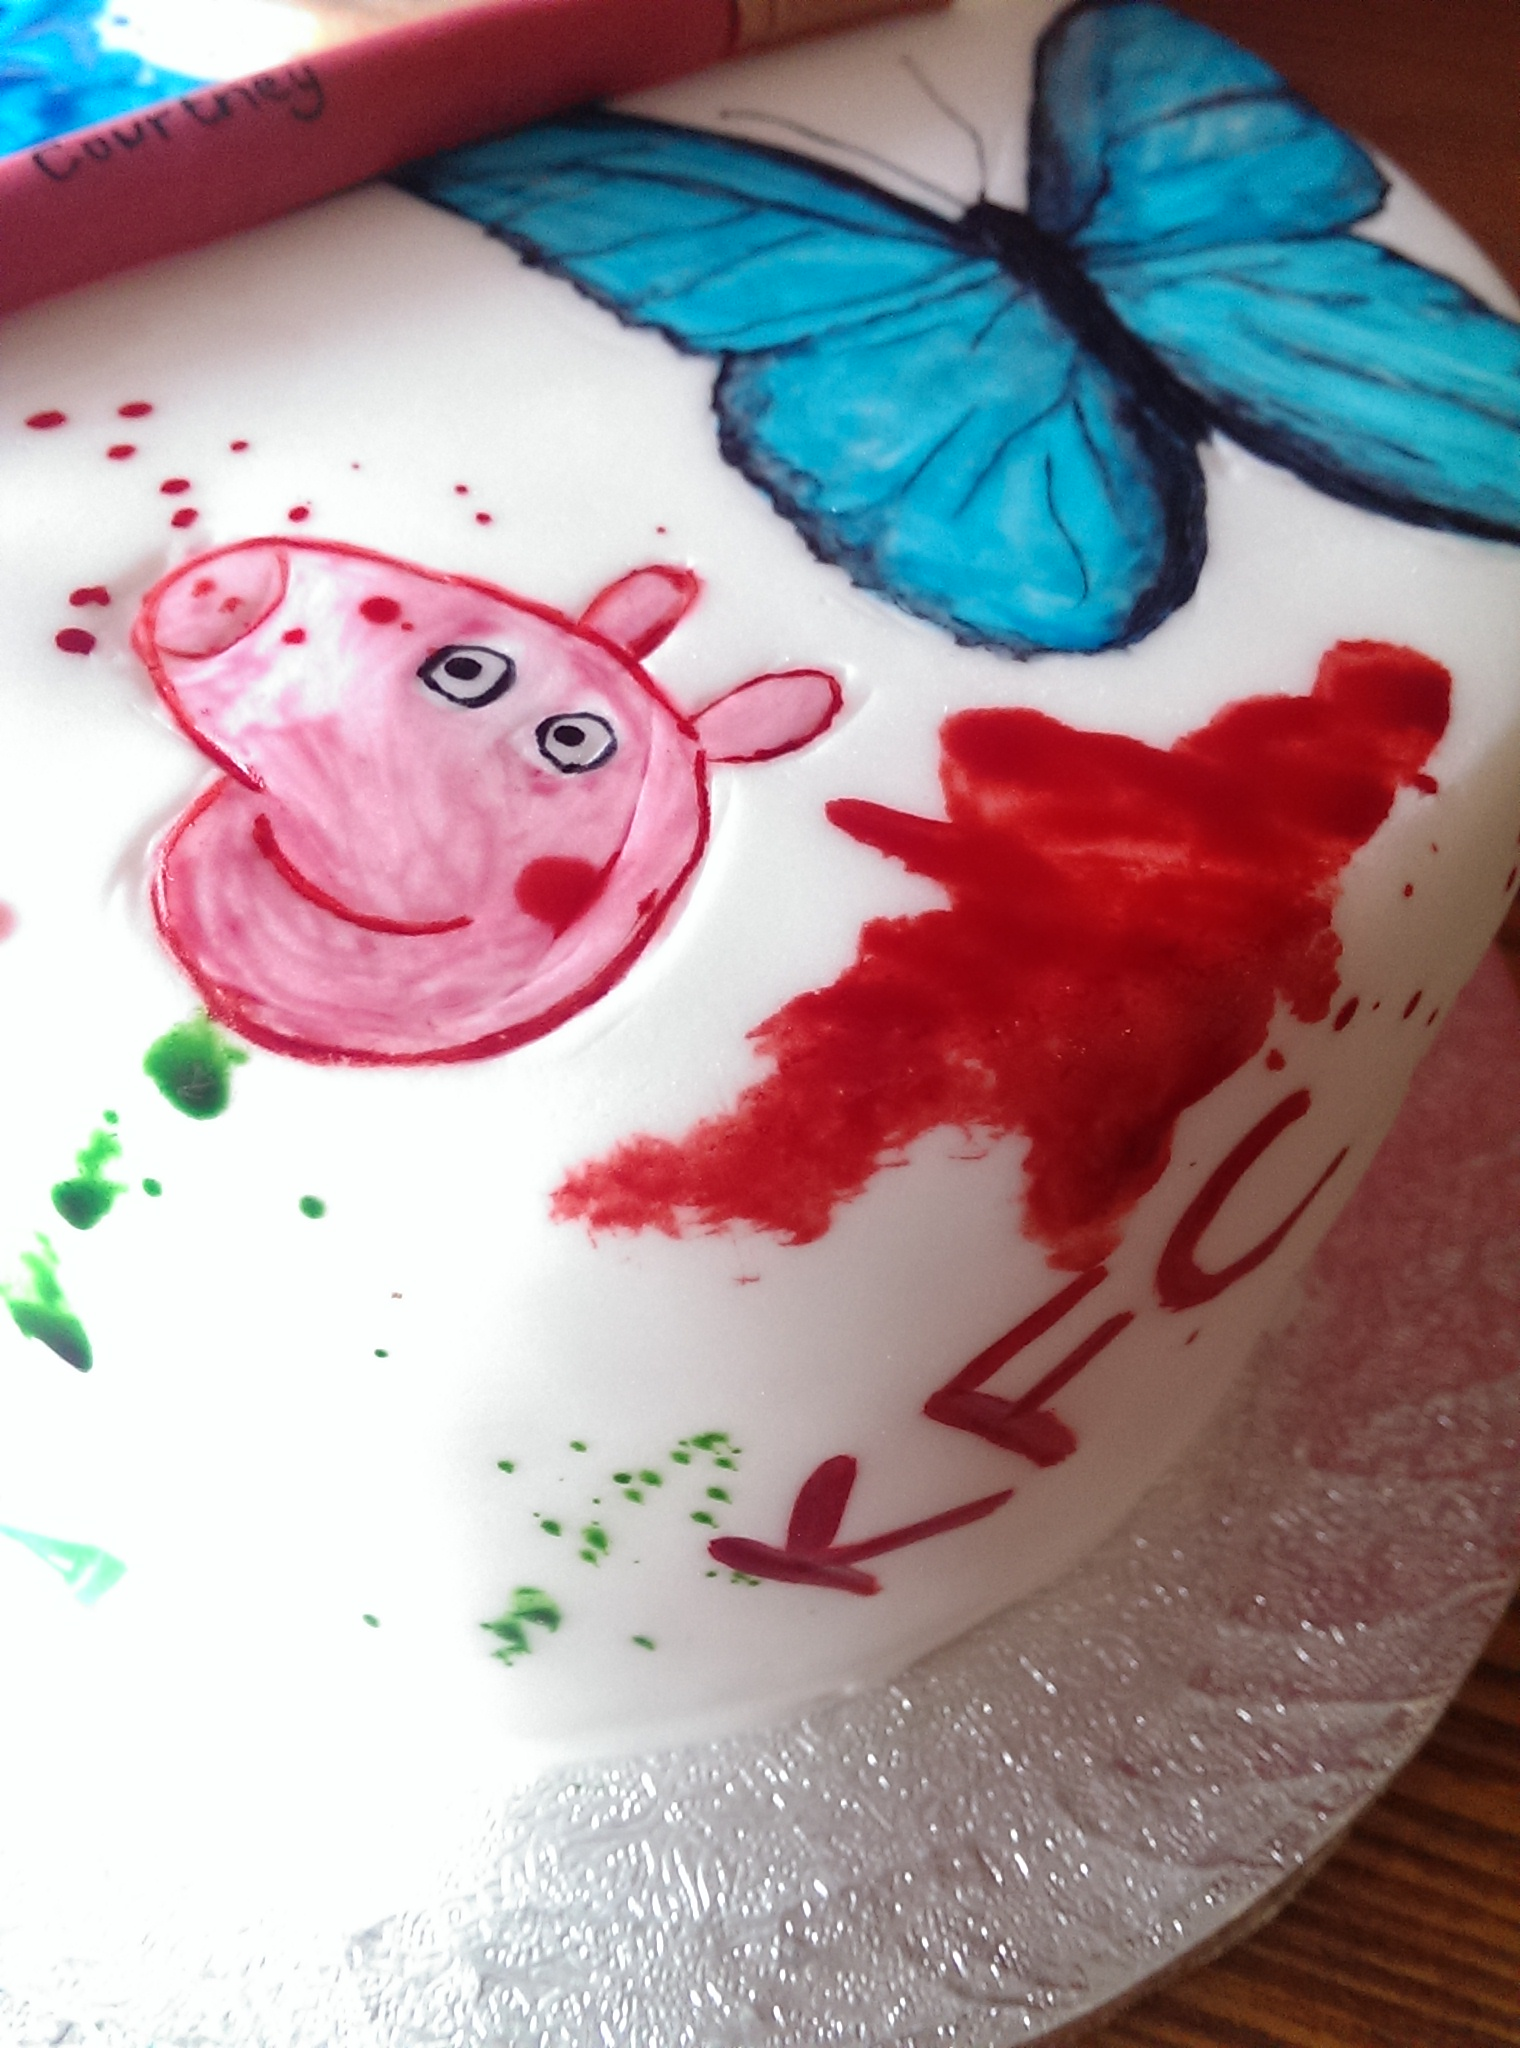 A small little memory cake in memory of a beautiful little girl, Courtney. Sweet dreams little one!